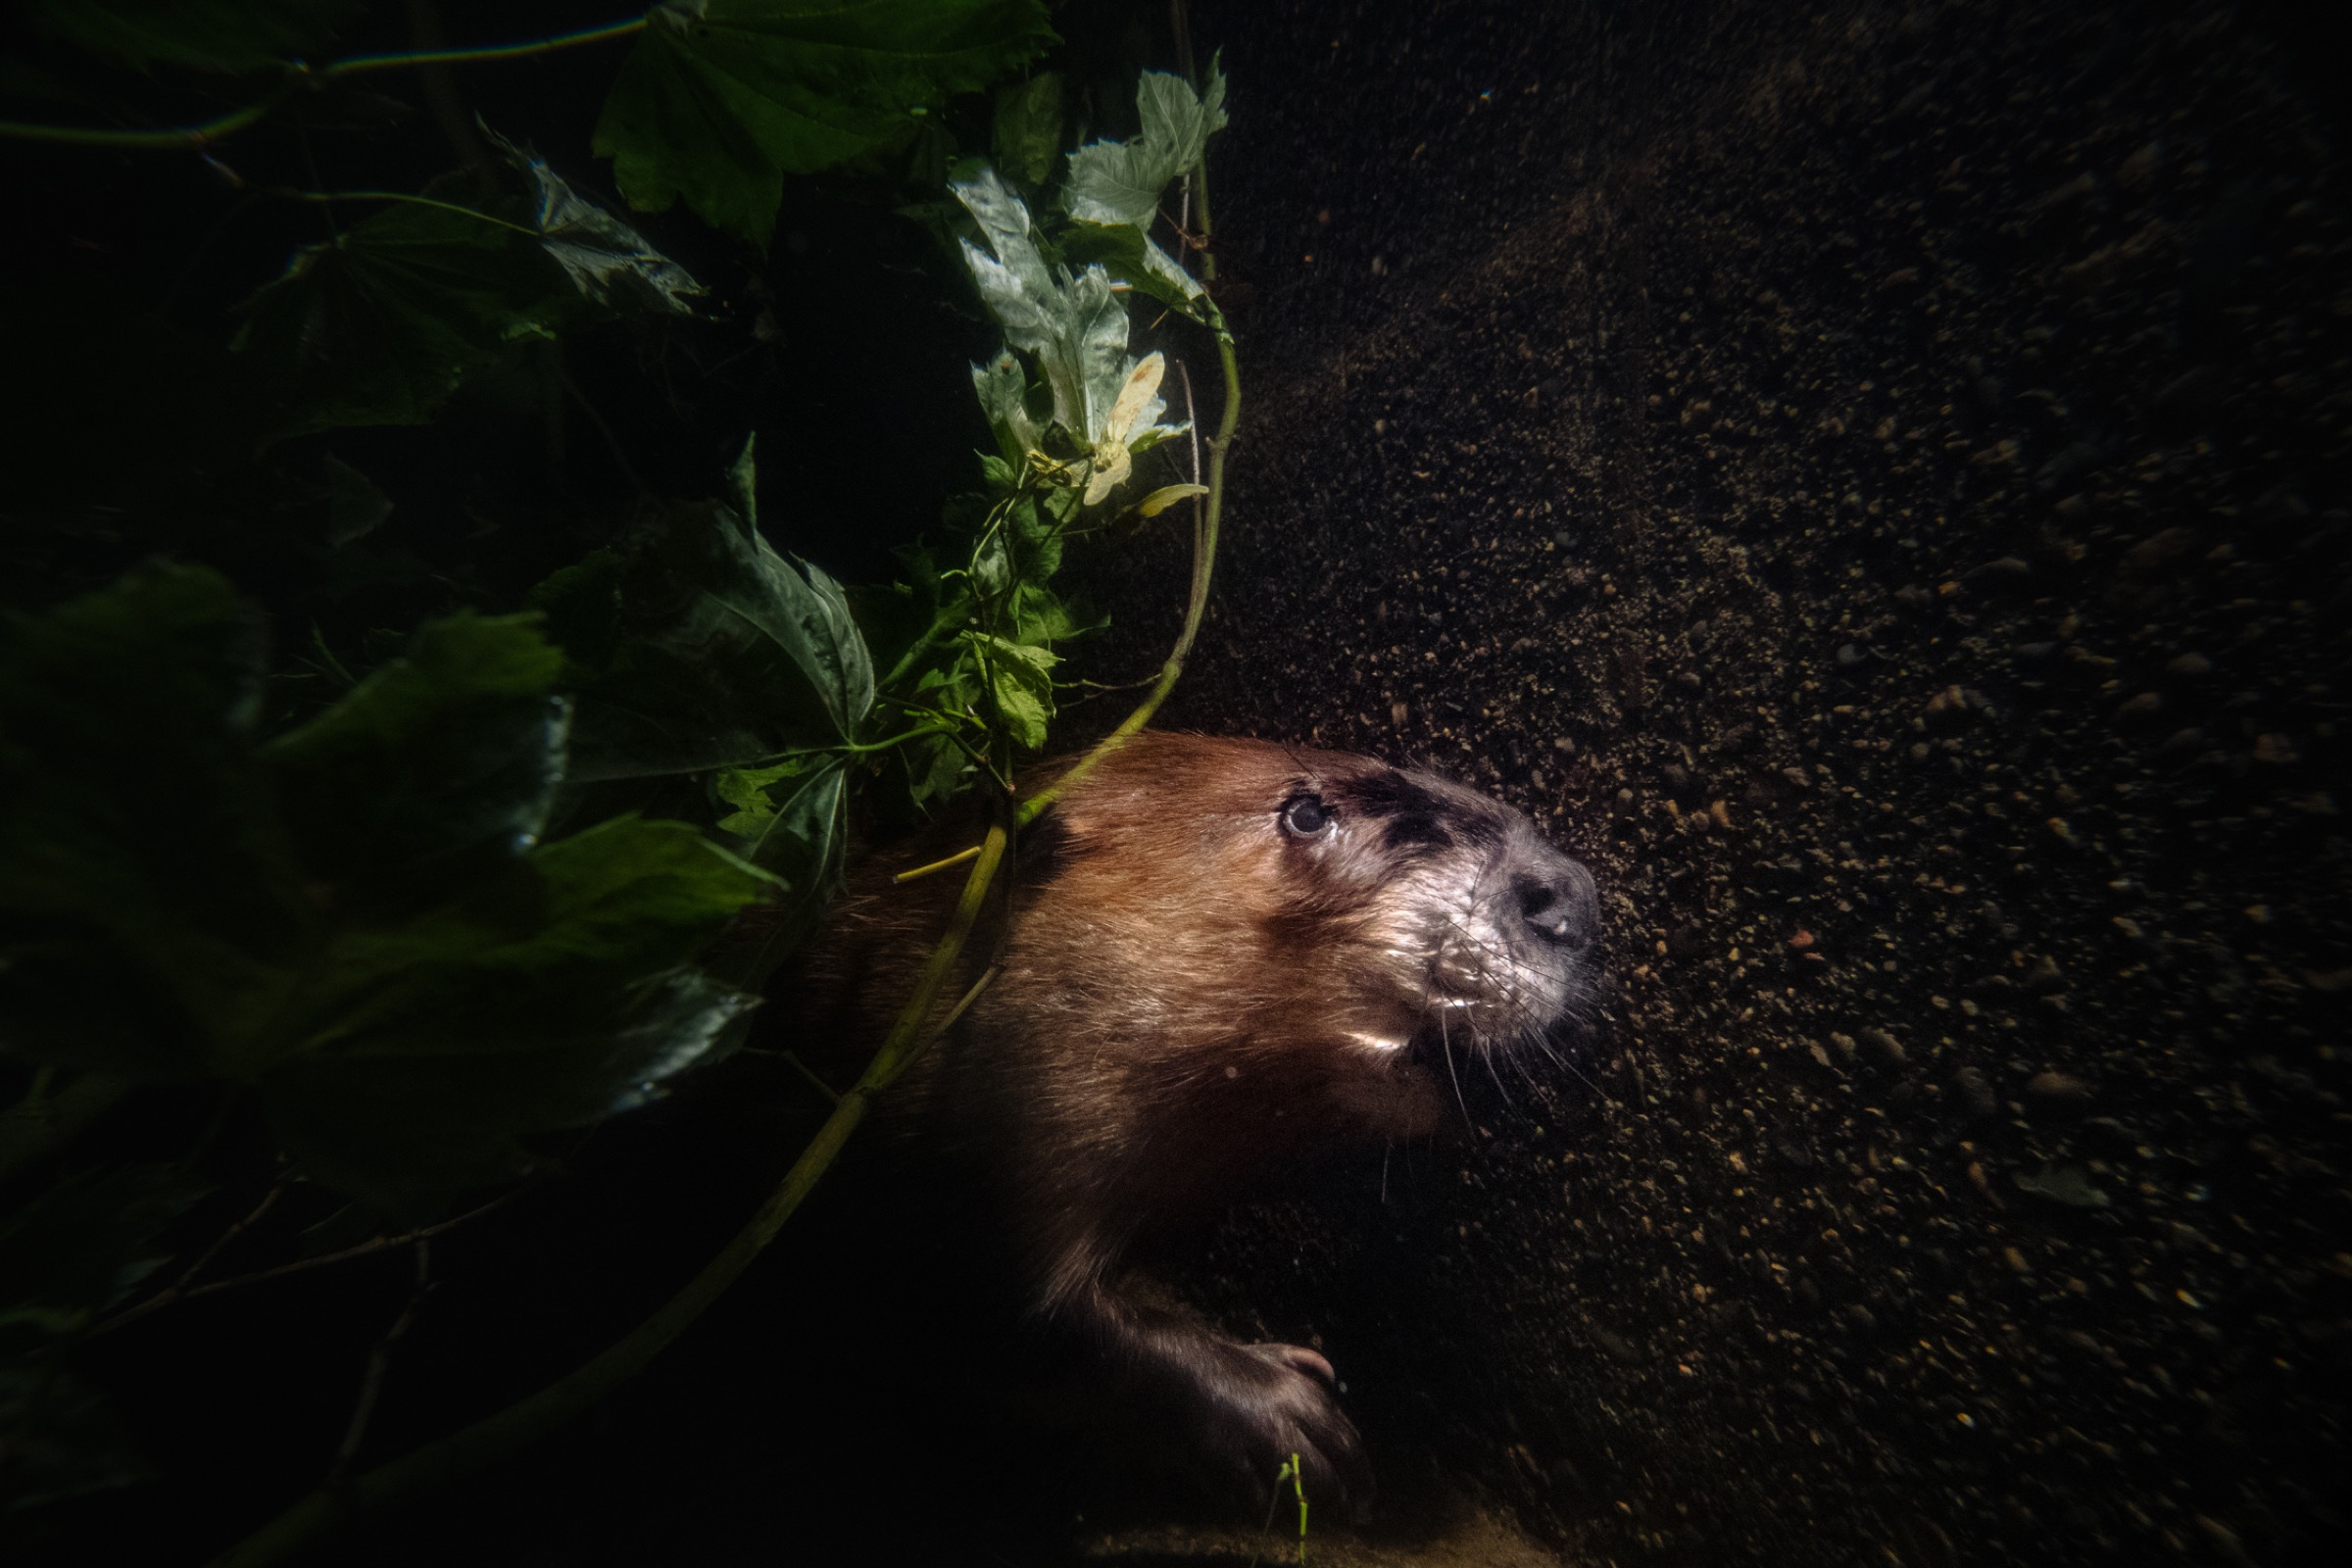 A beaver swims underwater along a raceway in the Tulalip fish hatchery prior to its release back into the wild.